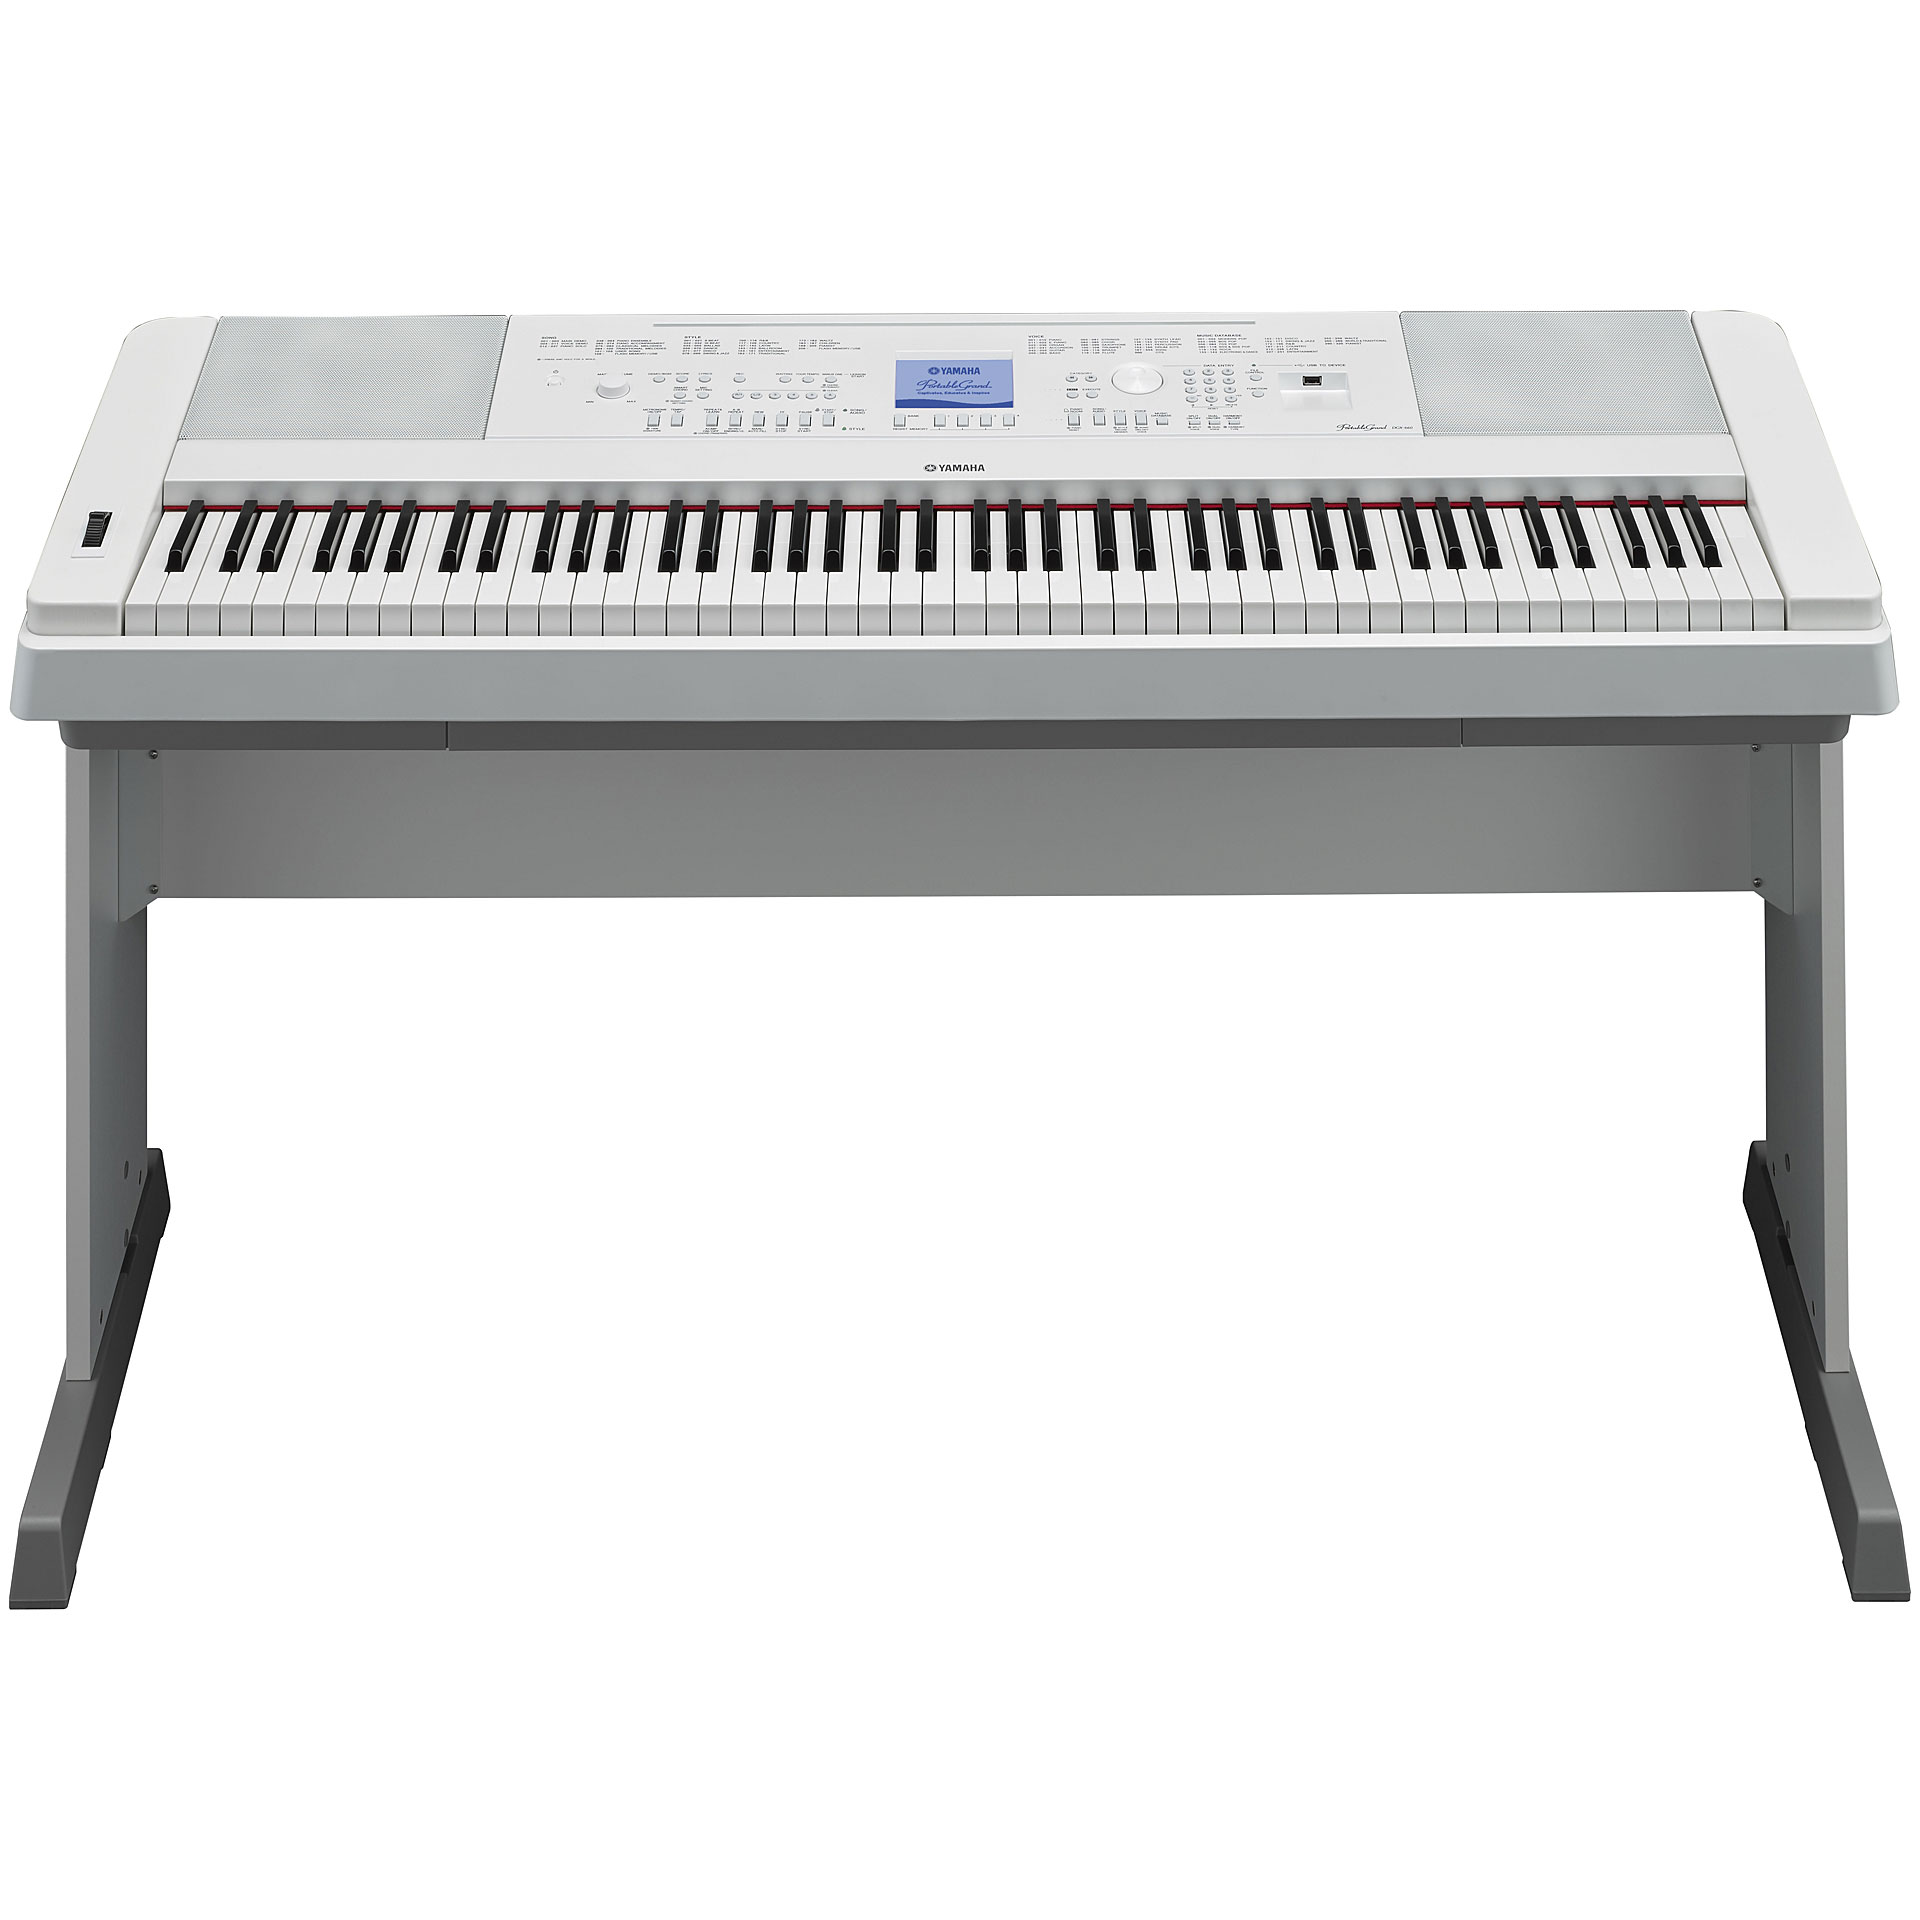 yamaha dgx 660 wh digital piano. Black Bedroom Furniture Sets. Home Design Ideas